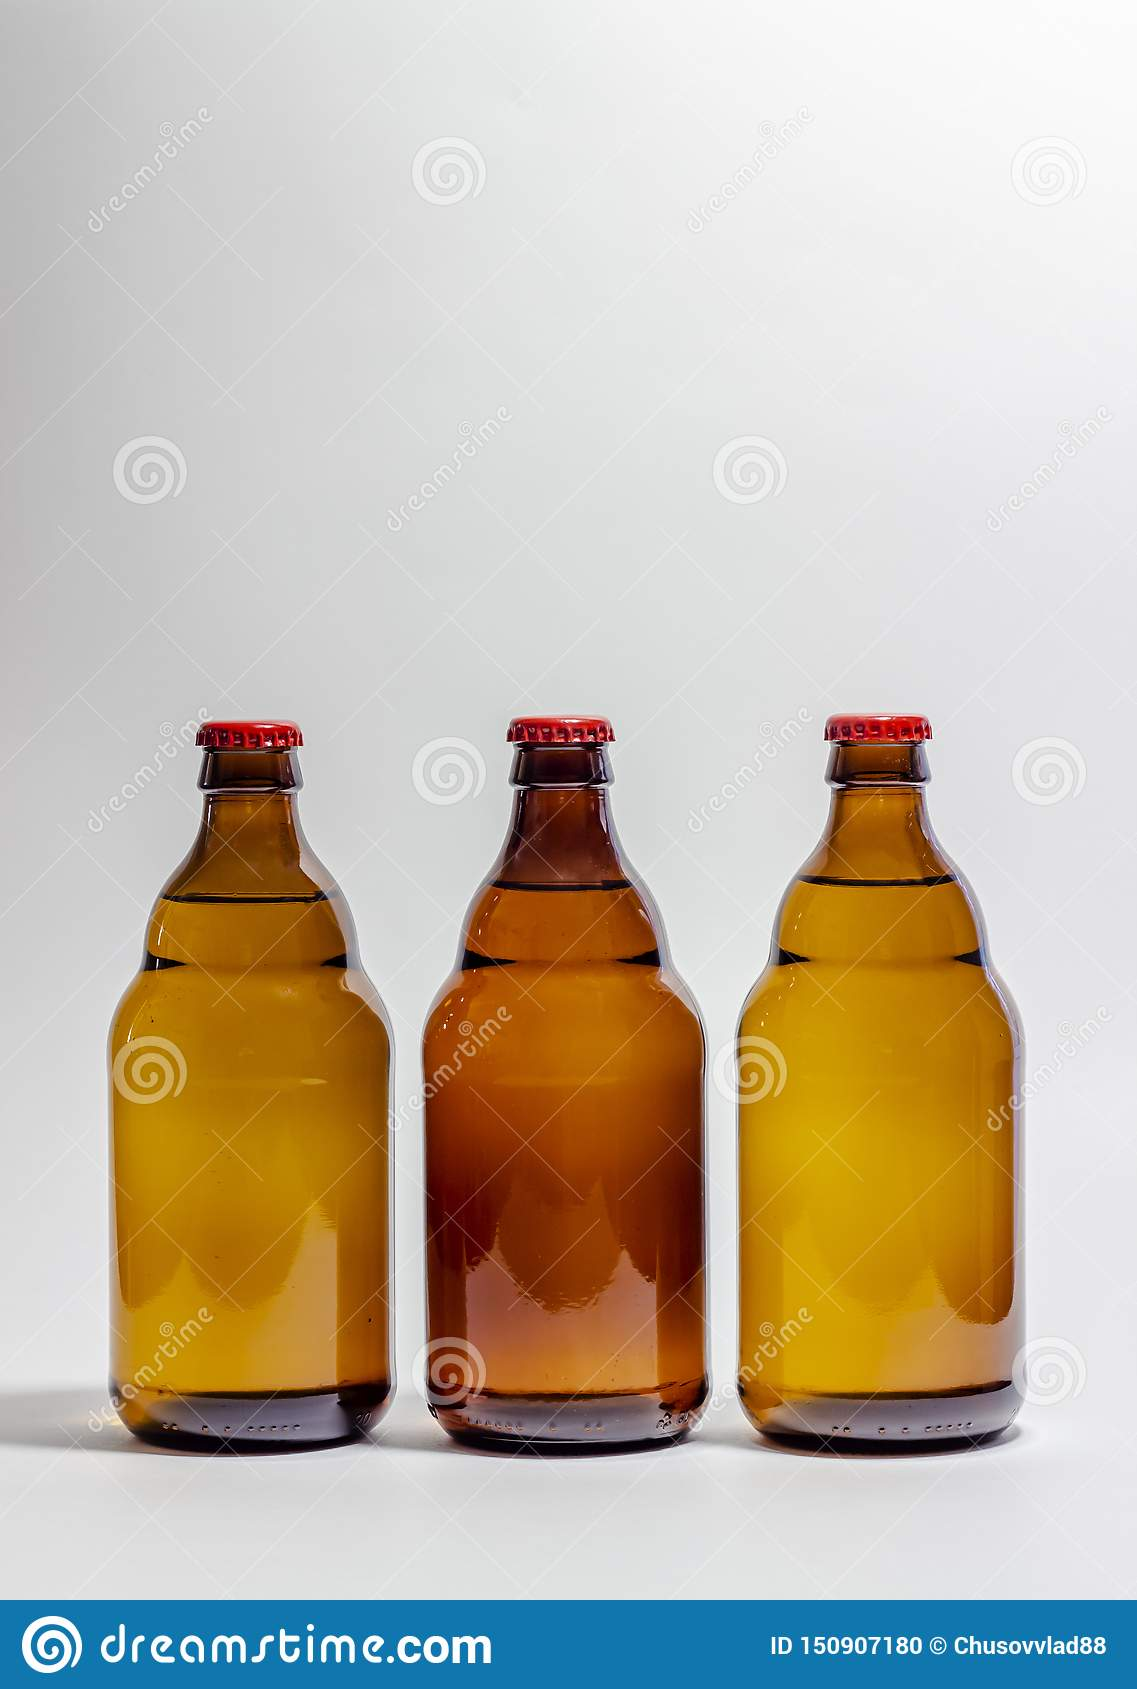 Beer bottles with a red cork on a gray background. Design. Minimalism. Creative idea. Mock-up